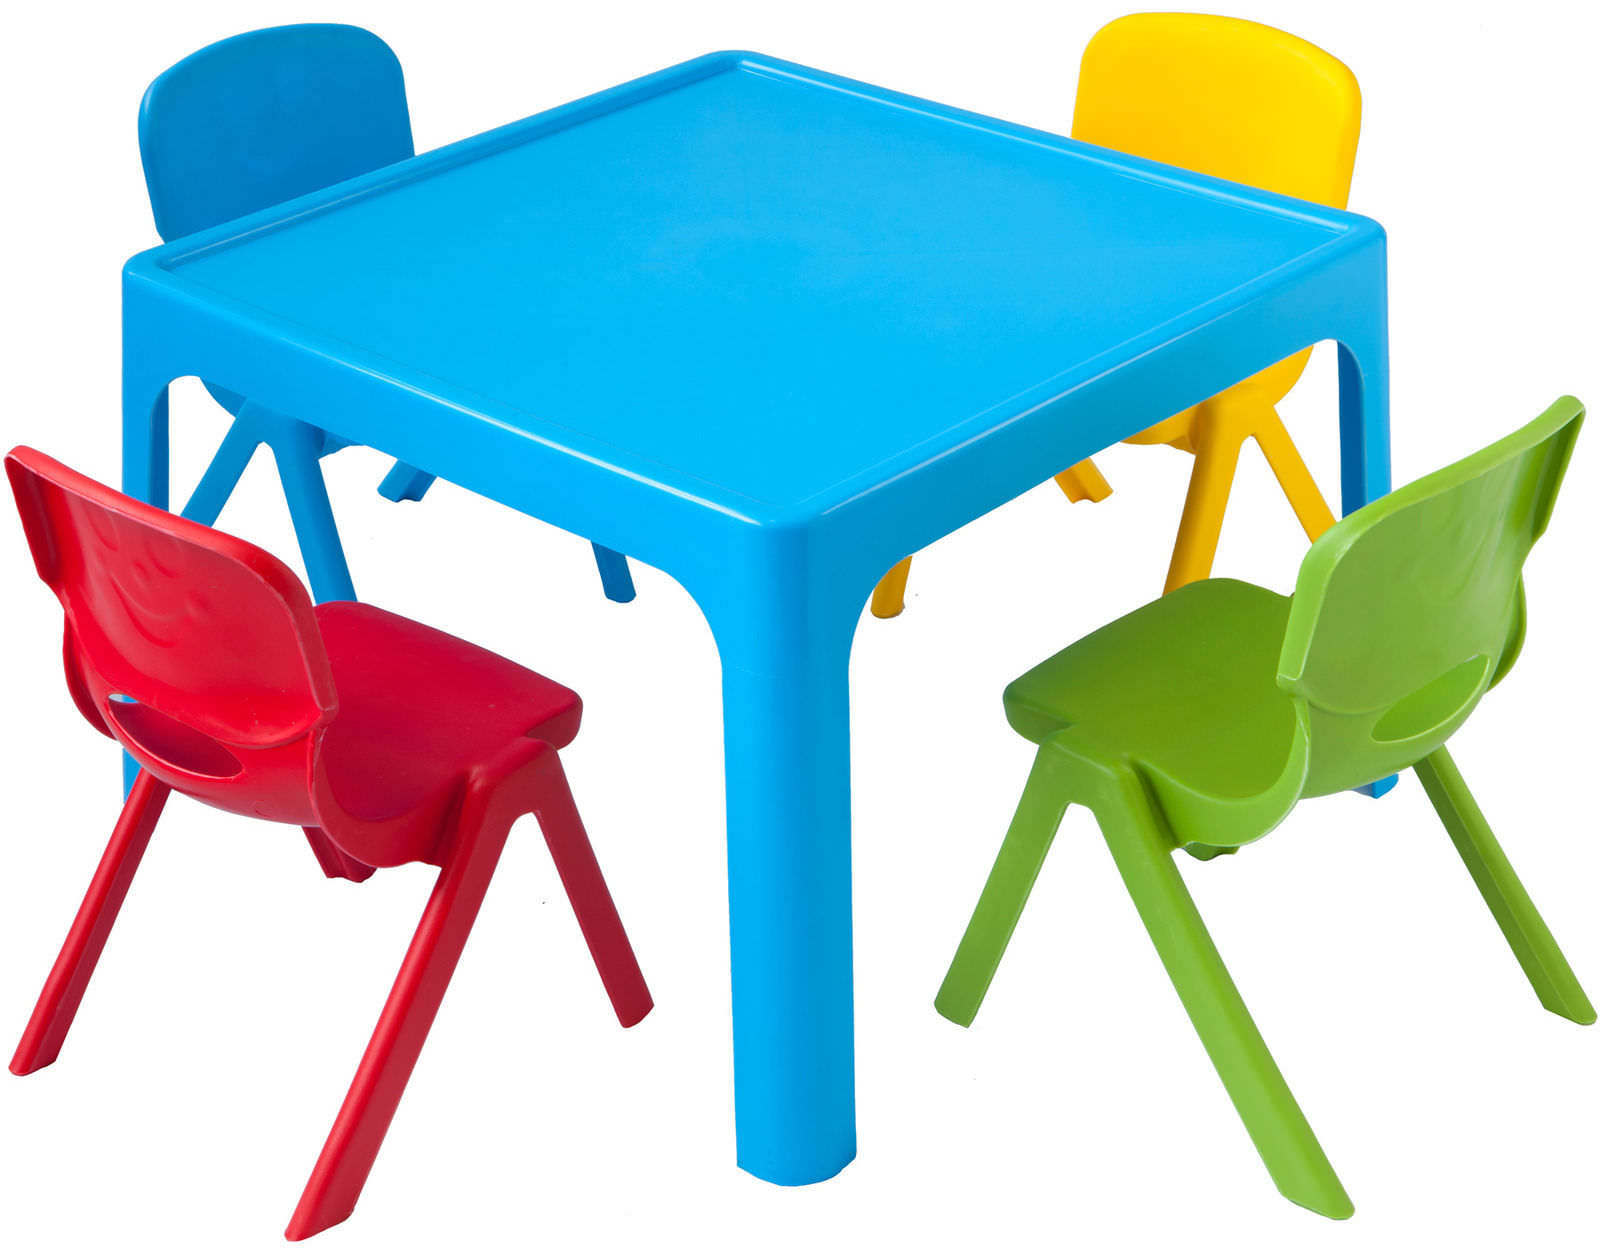 Kids Outdoor Table And Chairs Kids Table And Chairs Plastic Indoor Outdoor Kids Table